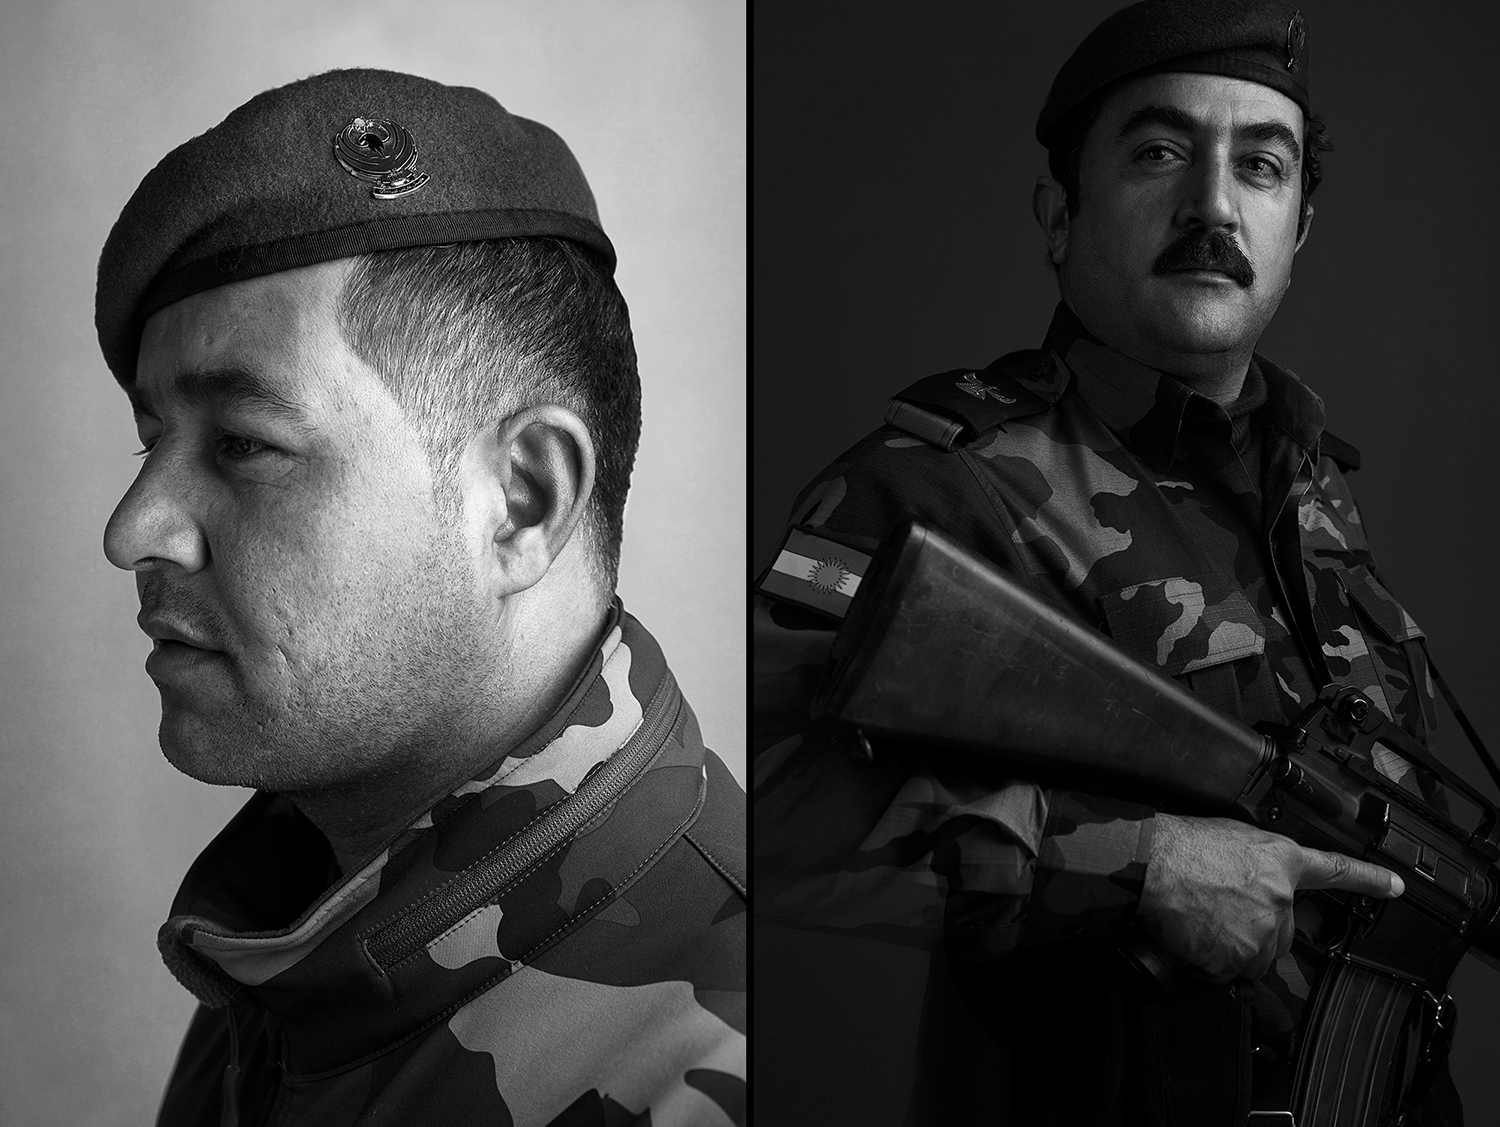 Portraits of two Peshmerga soldiers